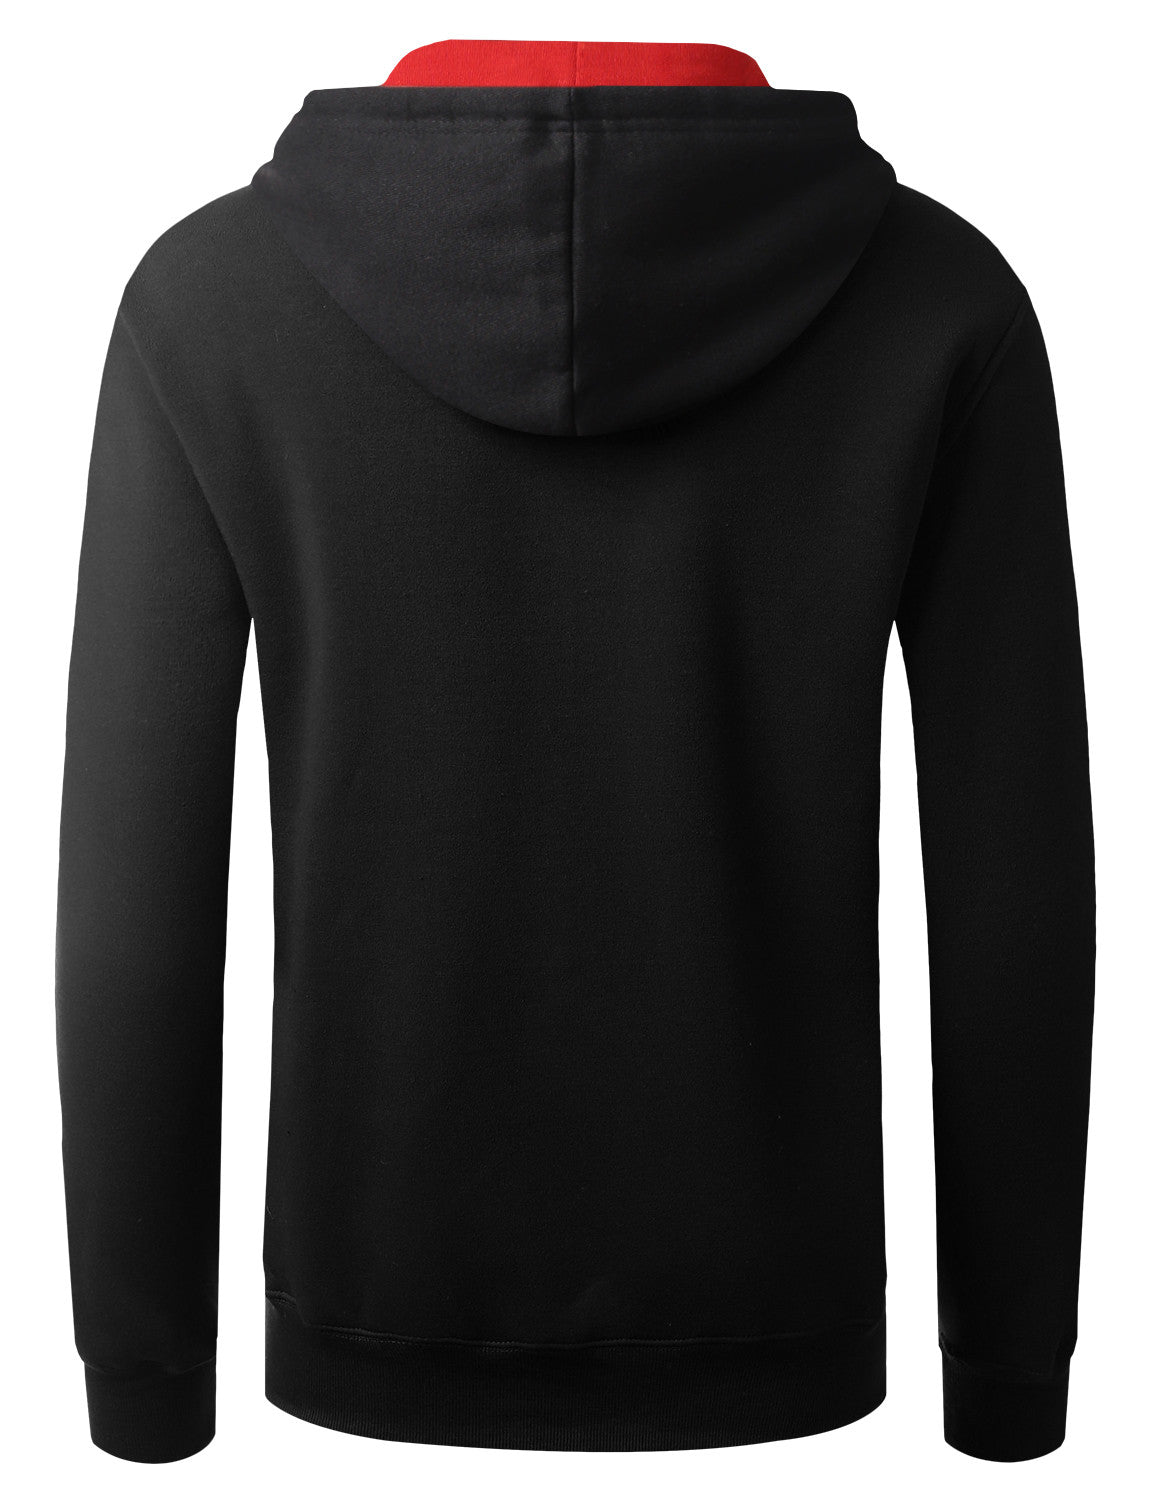 BLACKRED 2-Tone Pullover Hoodie Sweatshirt - URBANCREWS